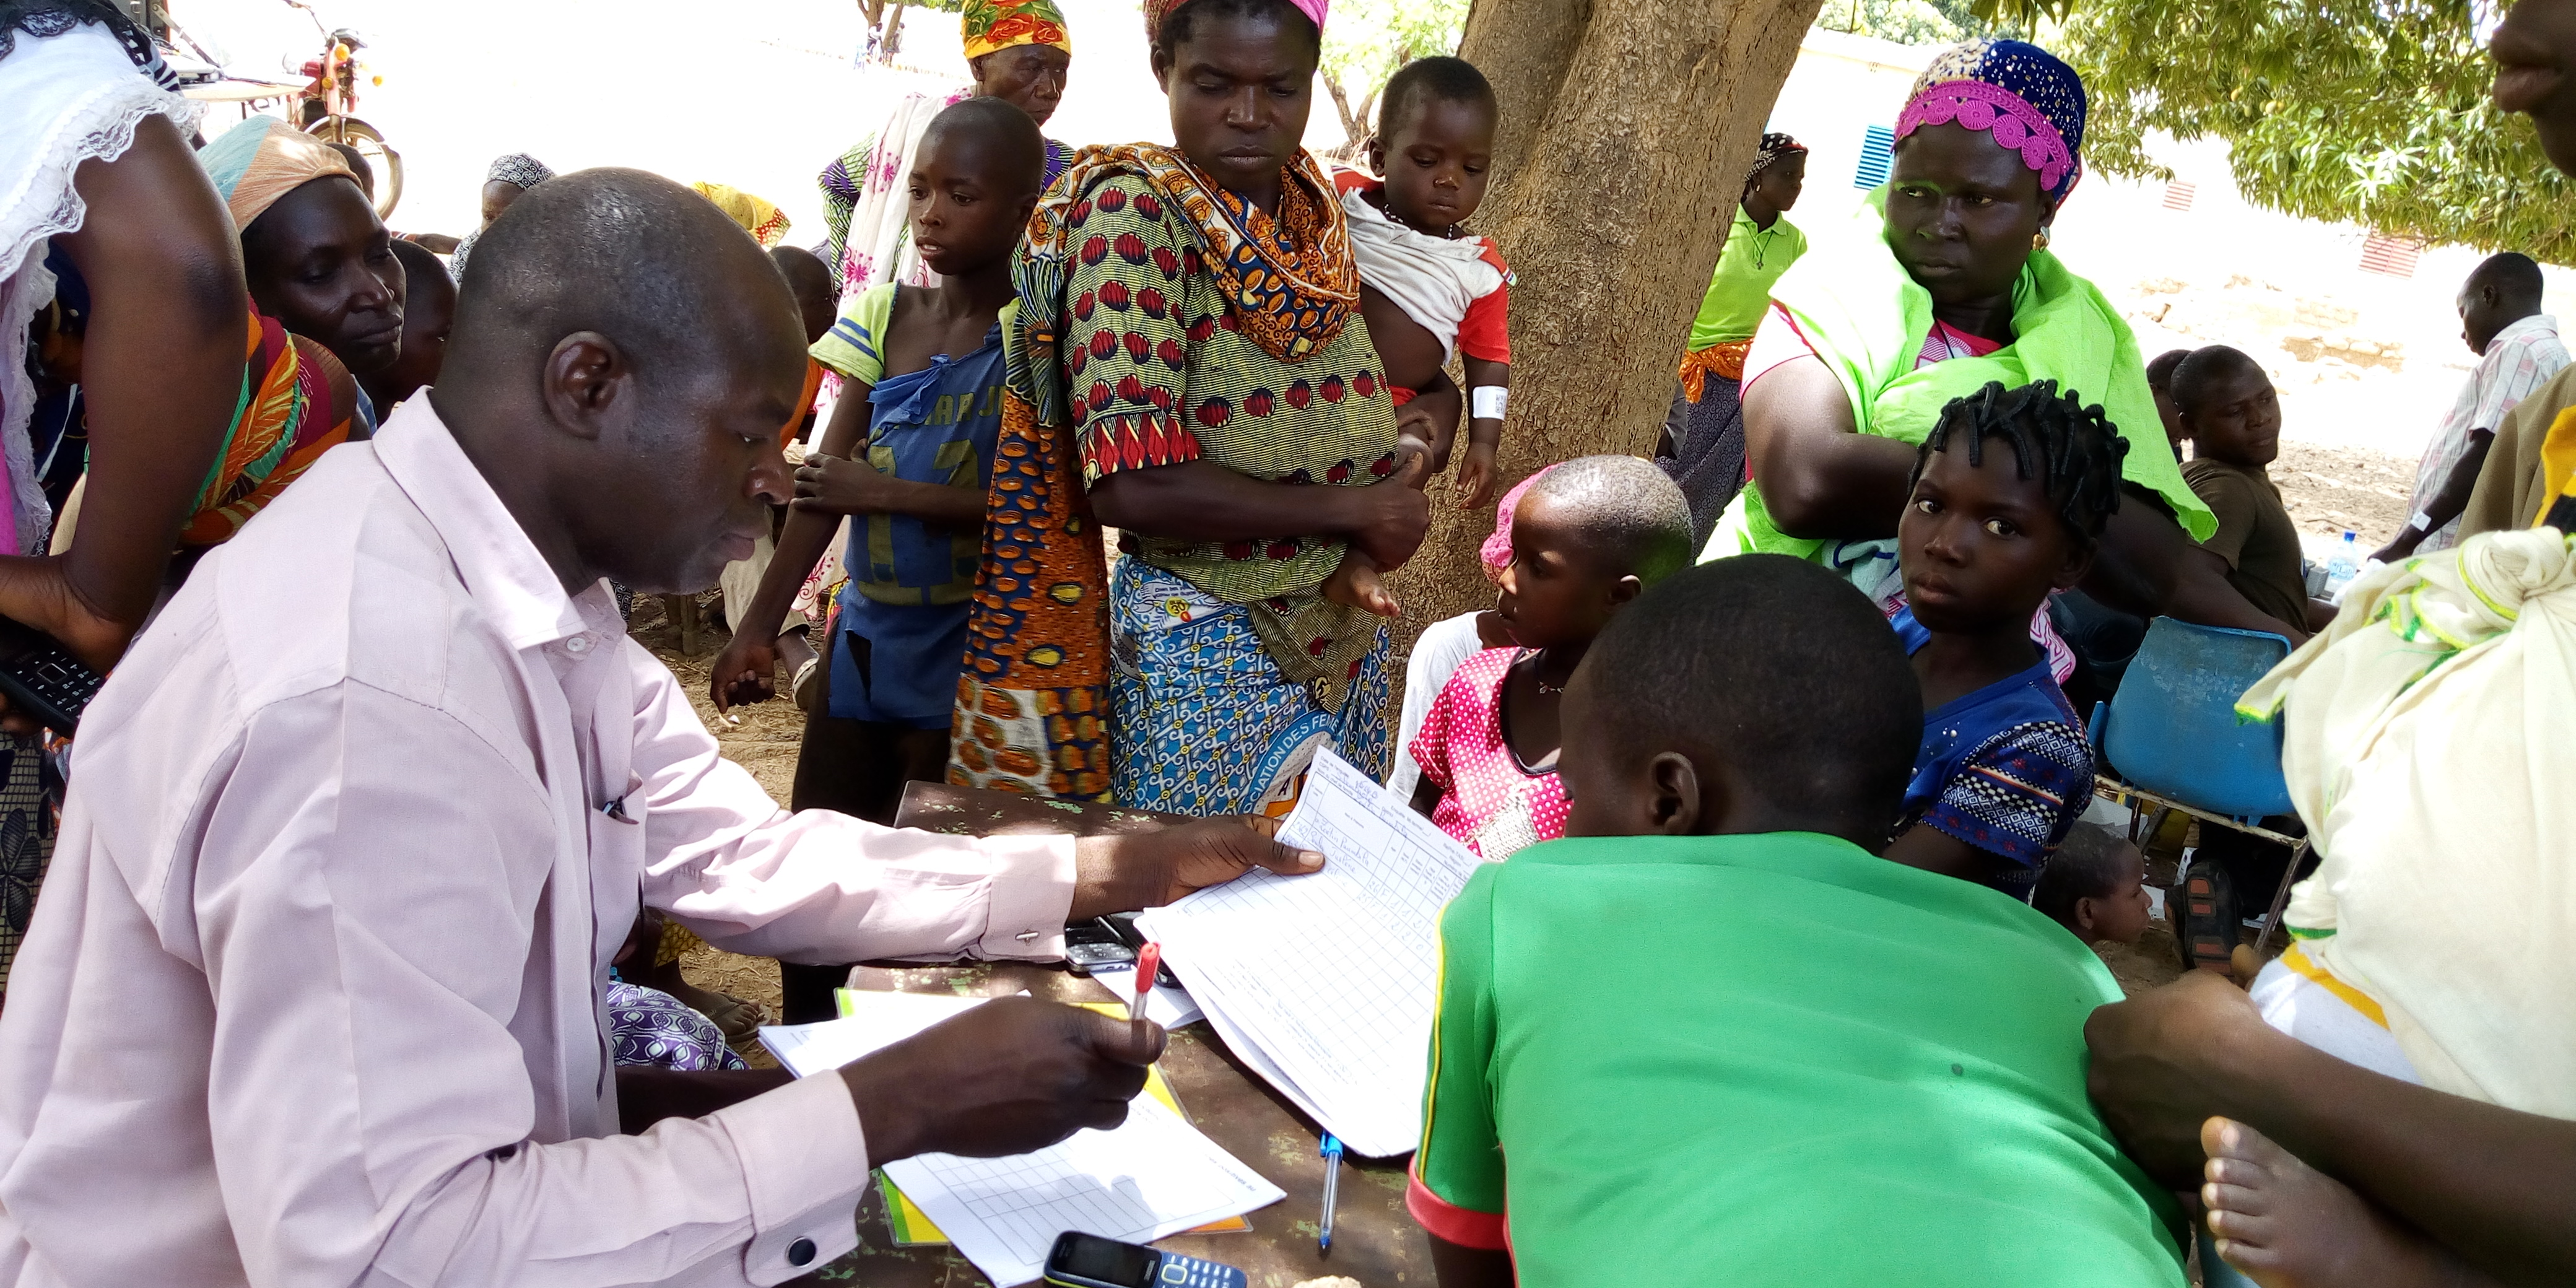 A nurse from the Salembaoré Health and Social Promotion Centre meets with a family during a survey registration session. Photo: Lucien Mano, HKI-Burkina Faso